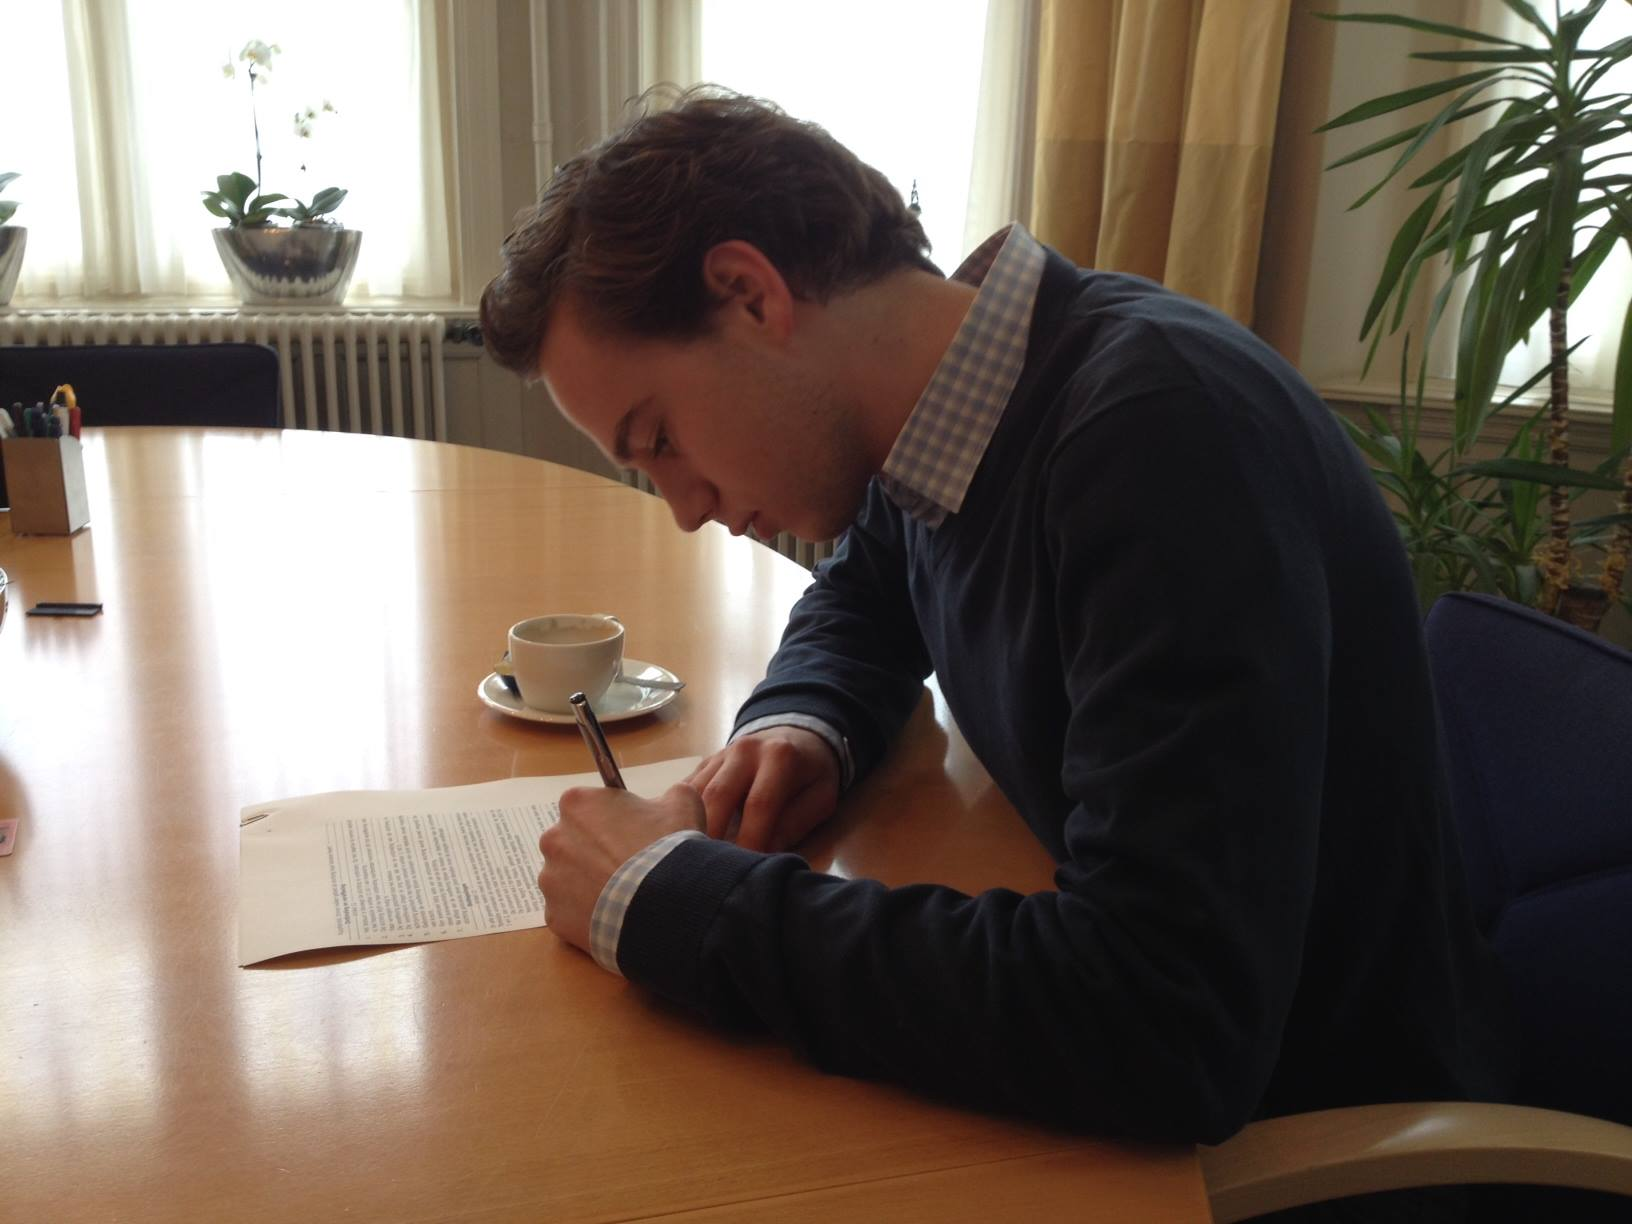 Chairman Thed Brouwer signing for the establishment of the Foundation on March 18, 2014